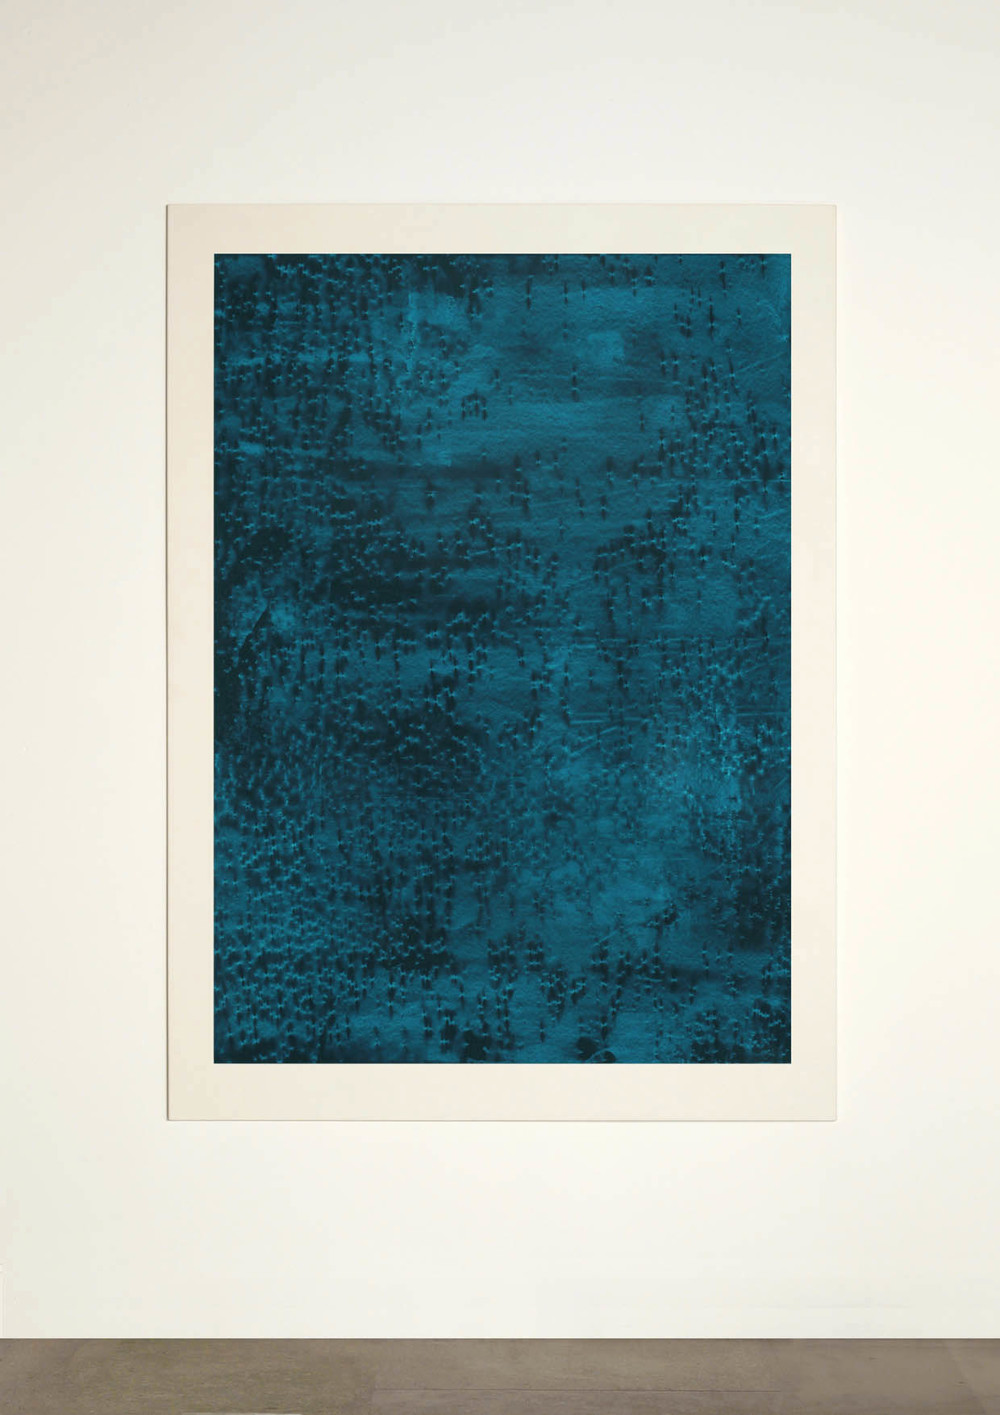 CONTINUOUS NOW – turquoise (IV)  2012  pigment dispersal on 100% cotton fibre  147 x 108 cm